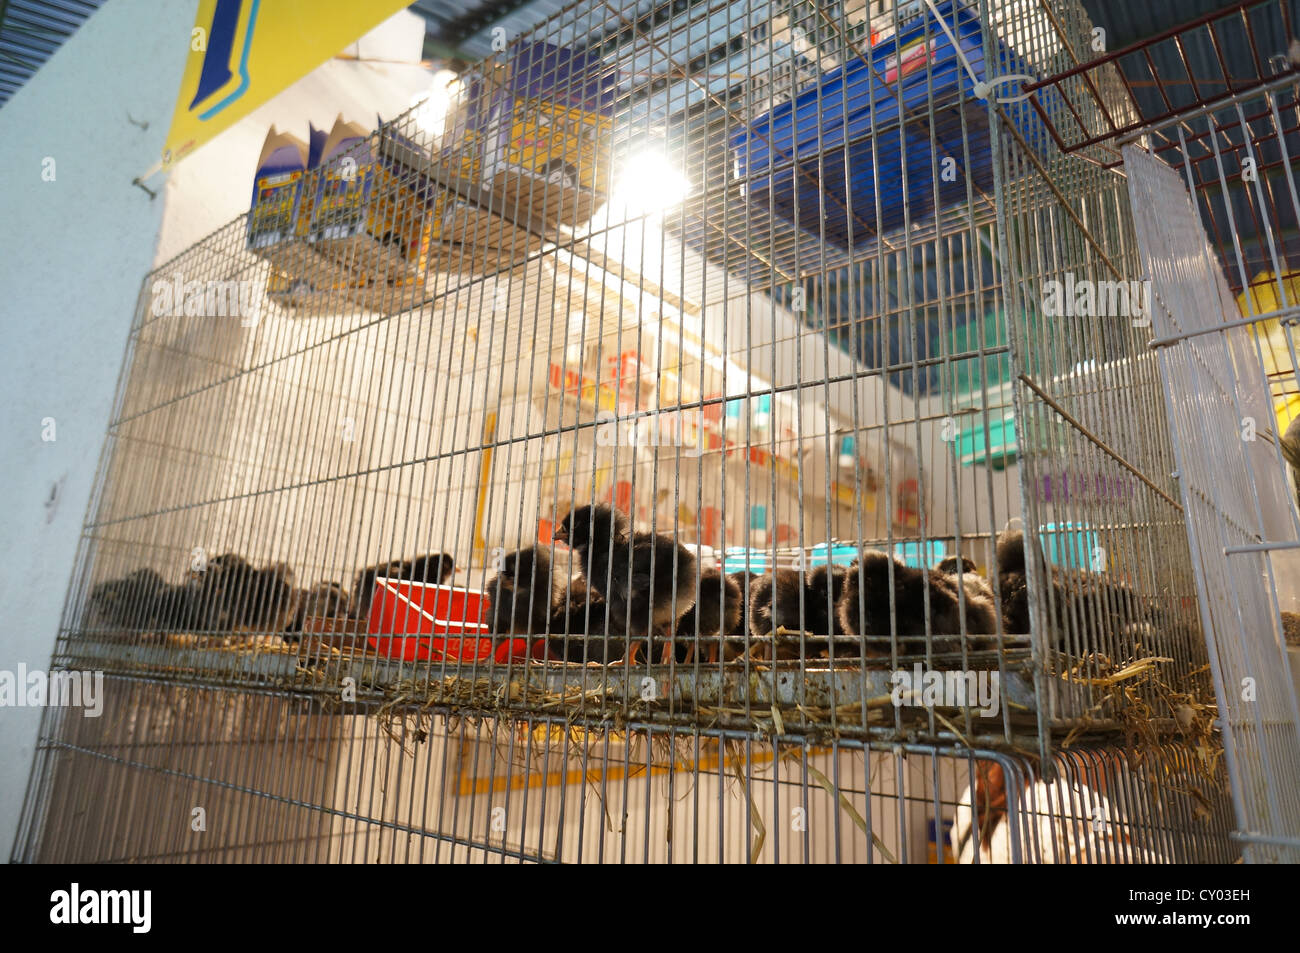 Group of young chickens in Fair at International livestock fair at Zafra, Badajoz, Spain - Stock Image